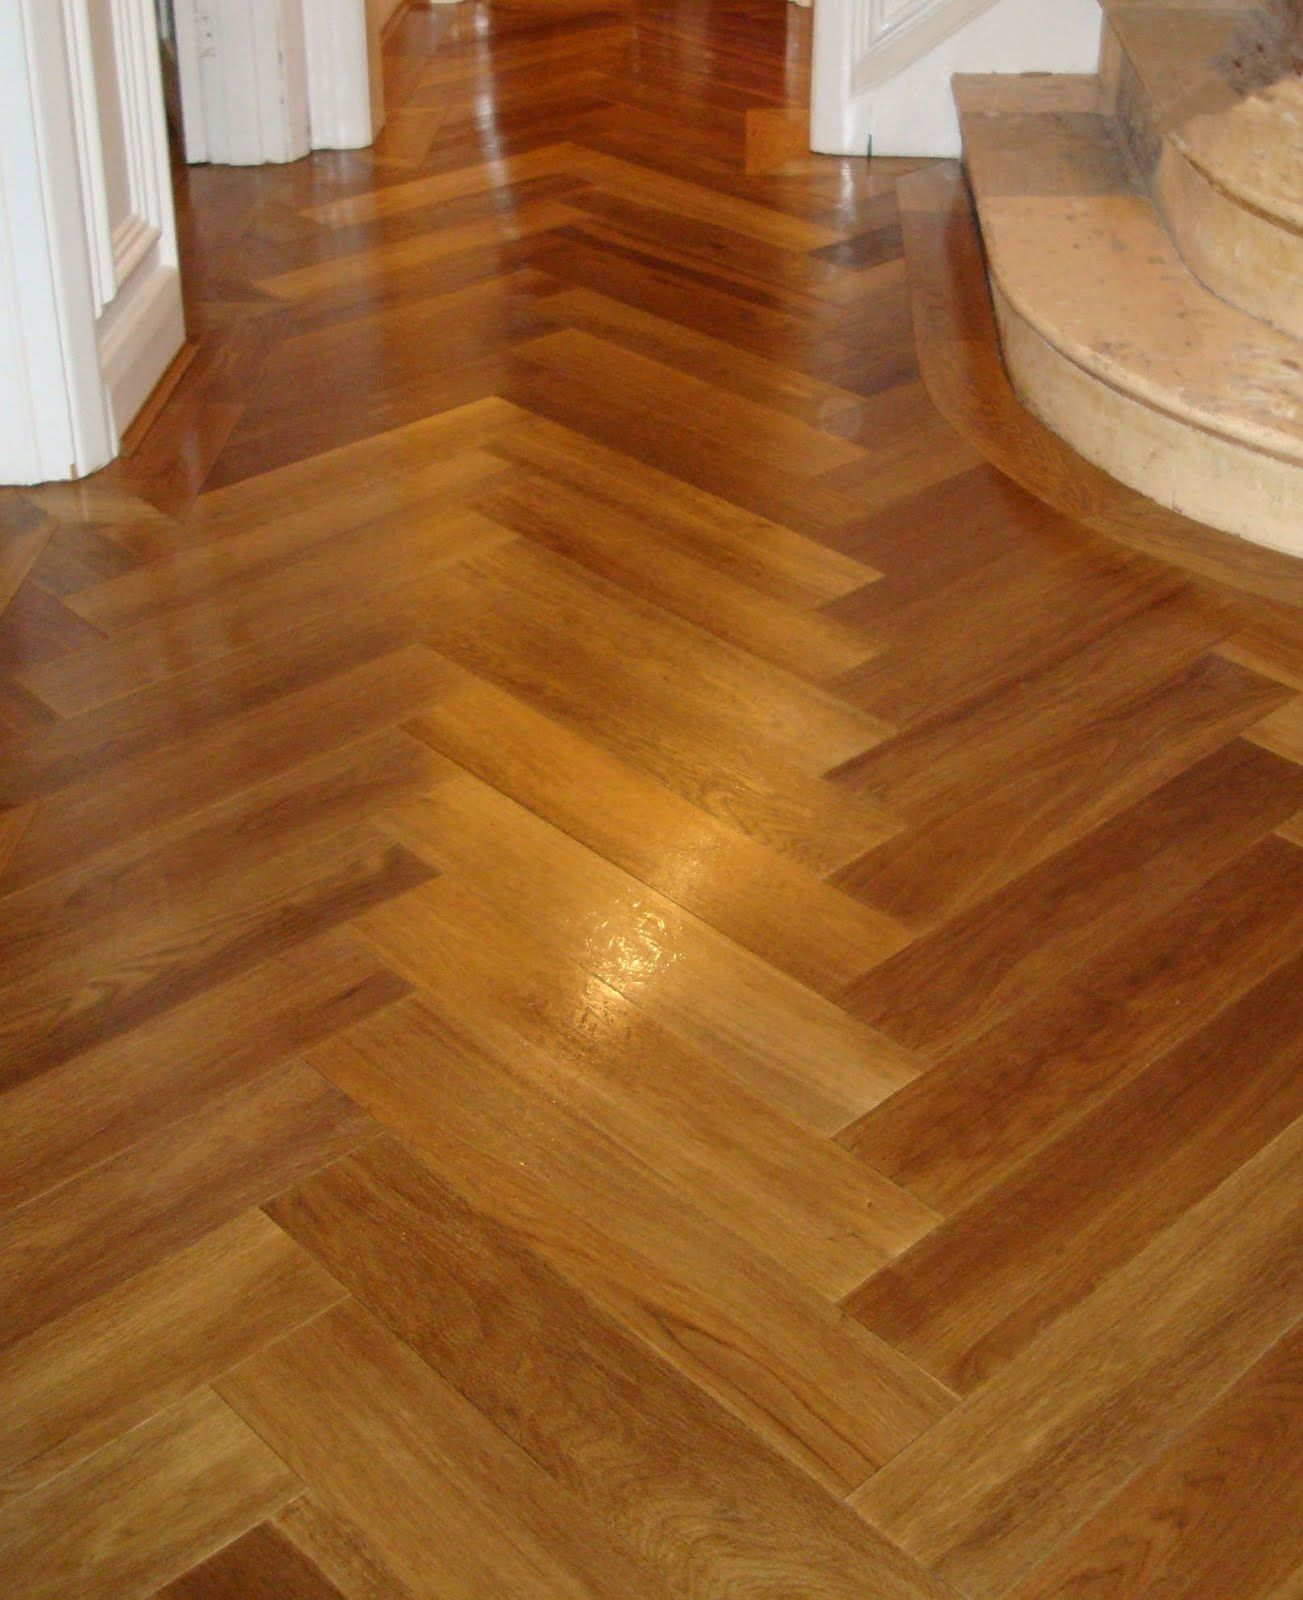 wood flooring ideas | Wood Floor,Wood Floor Design,Wood Floor ...